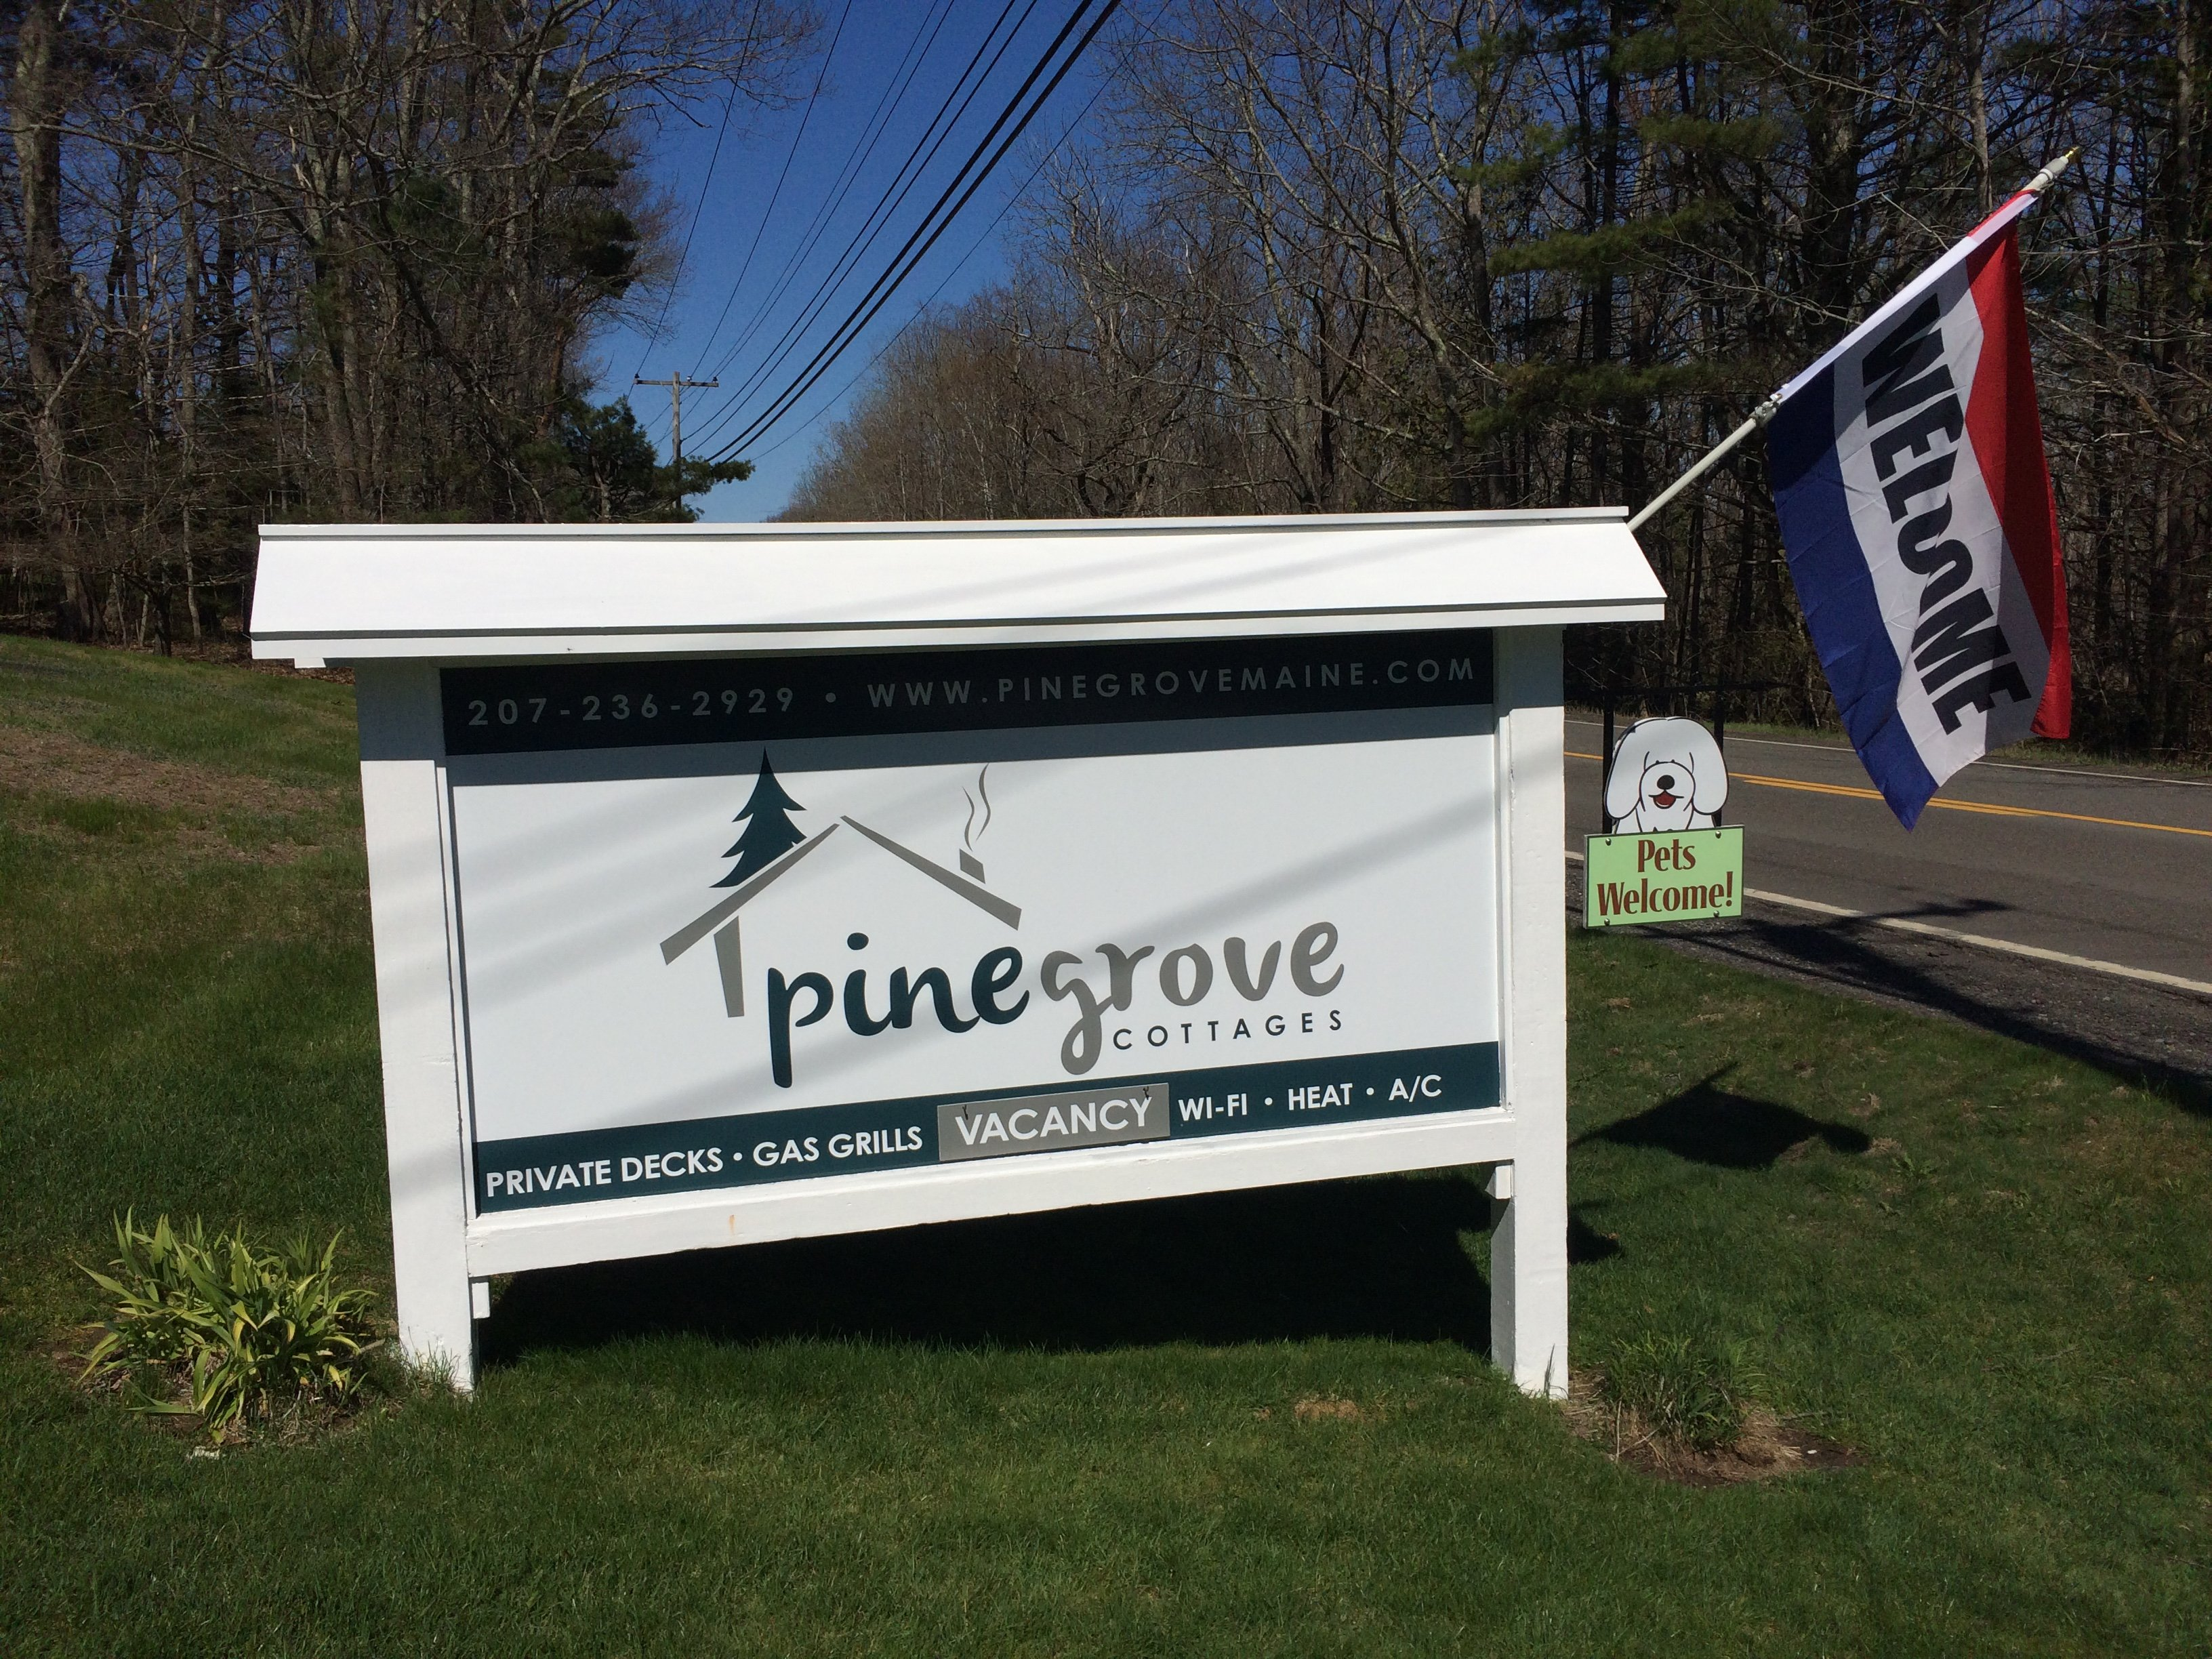 Pine Grove Cottages awaits you!